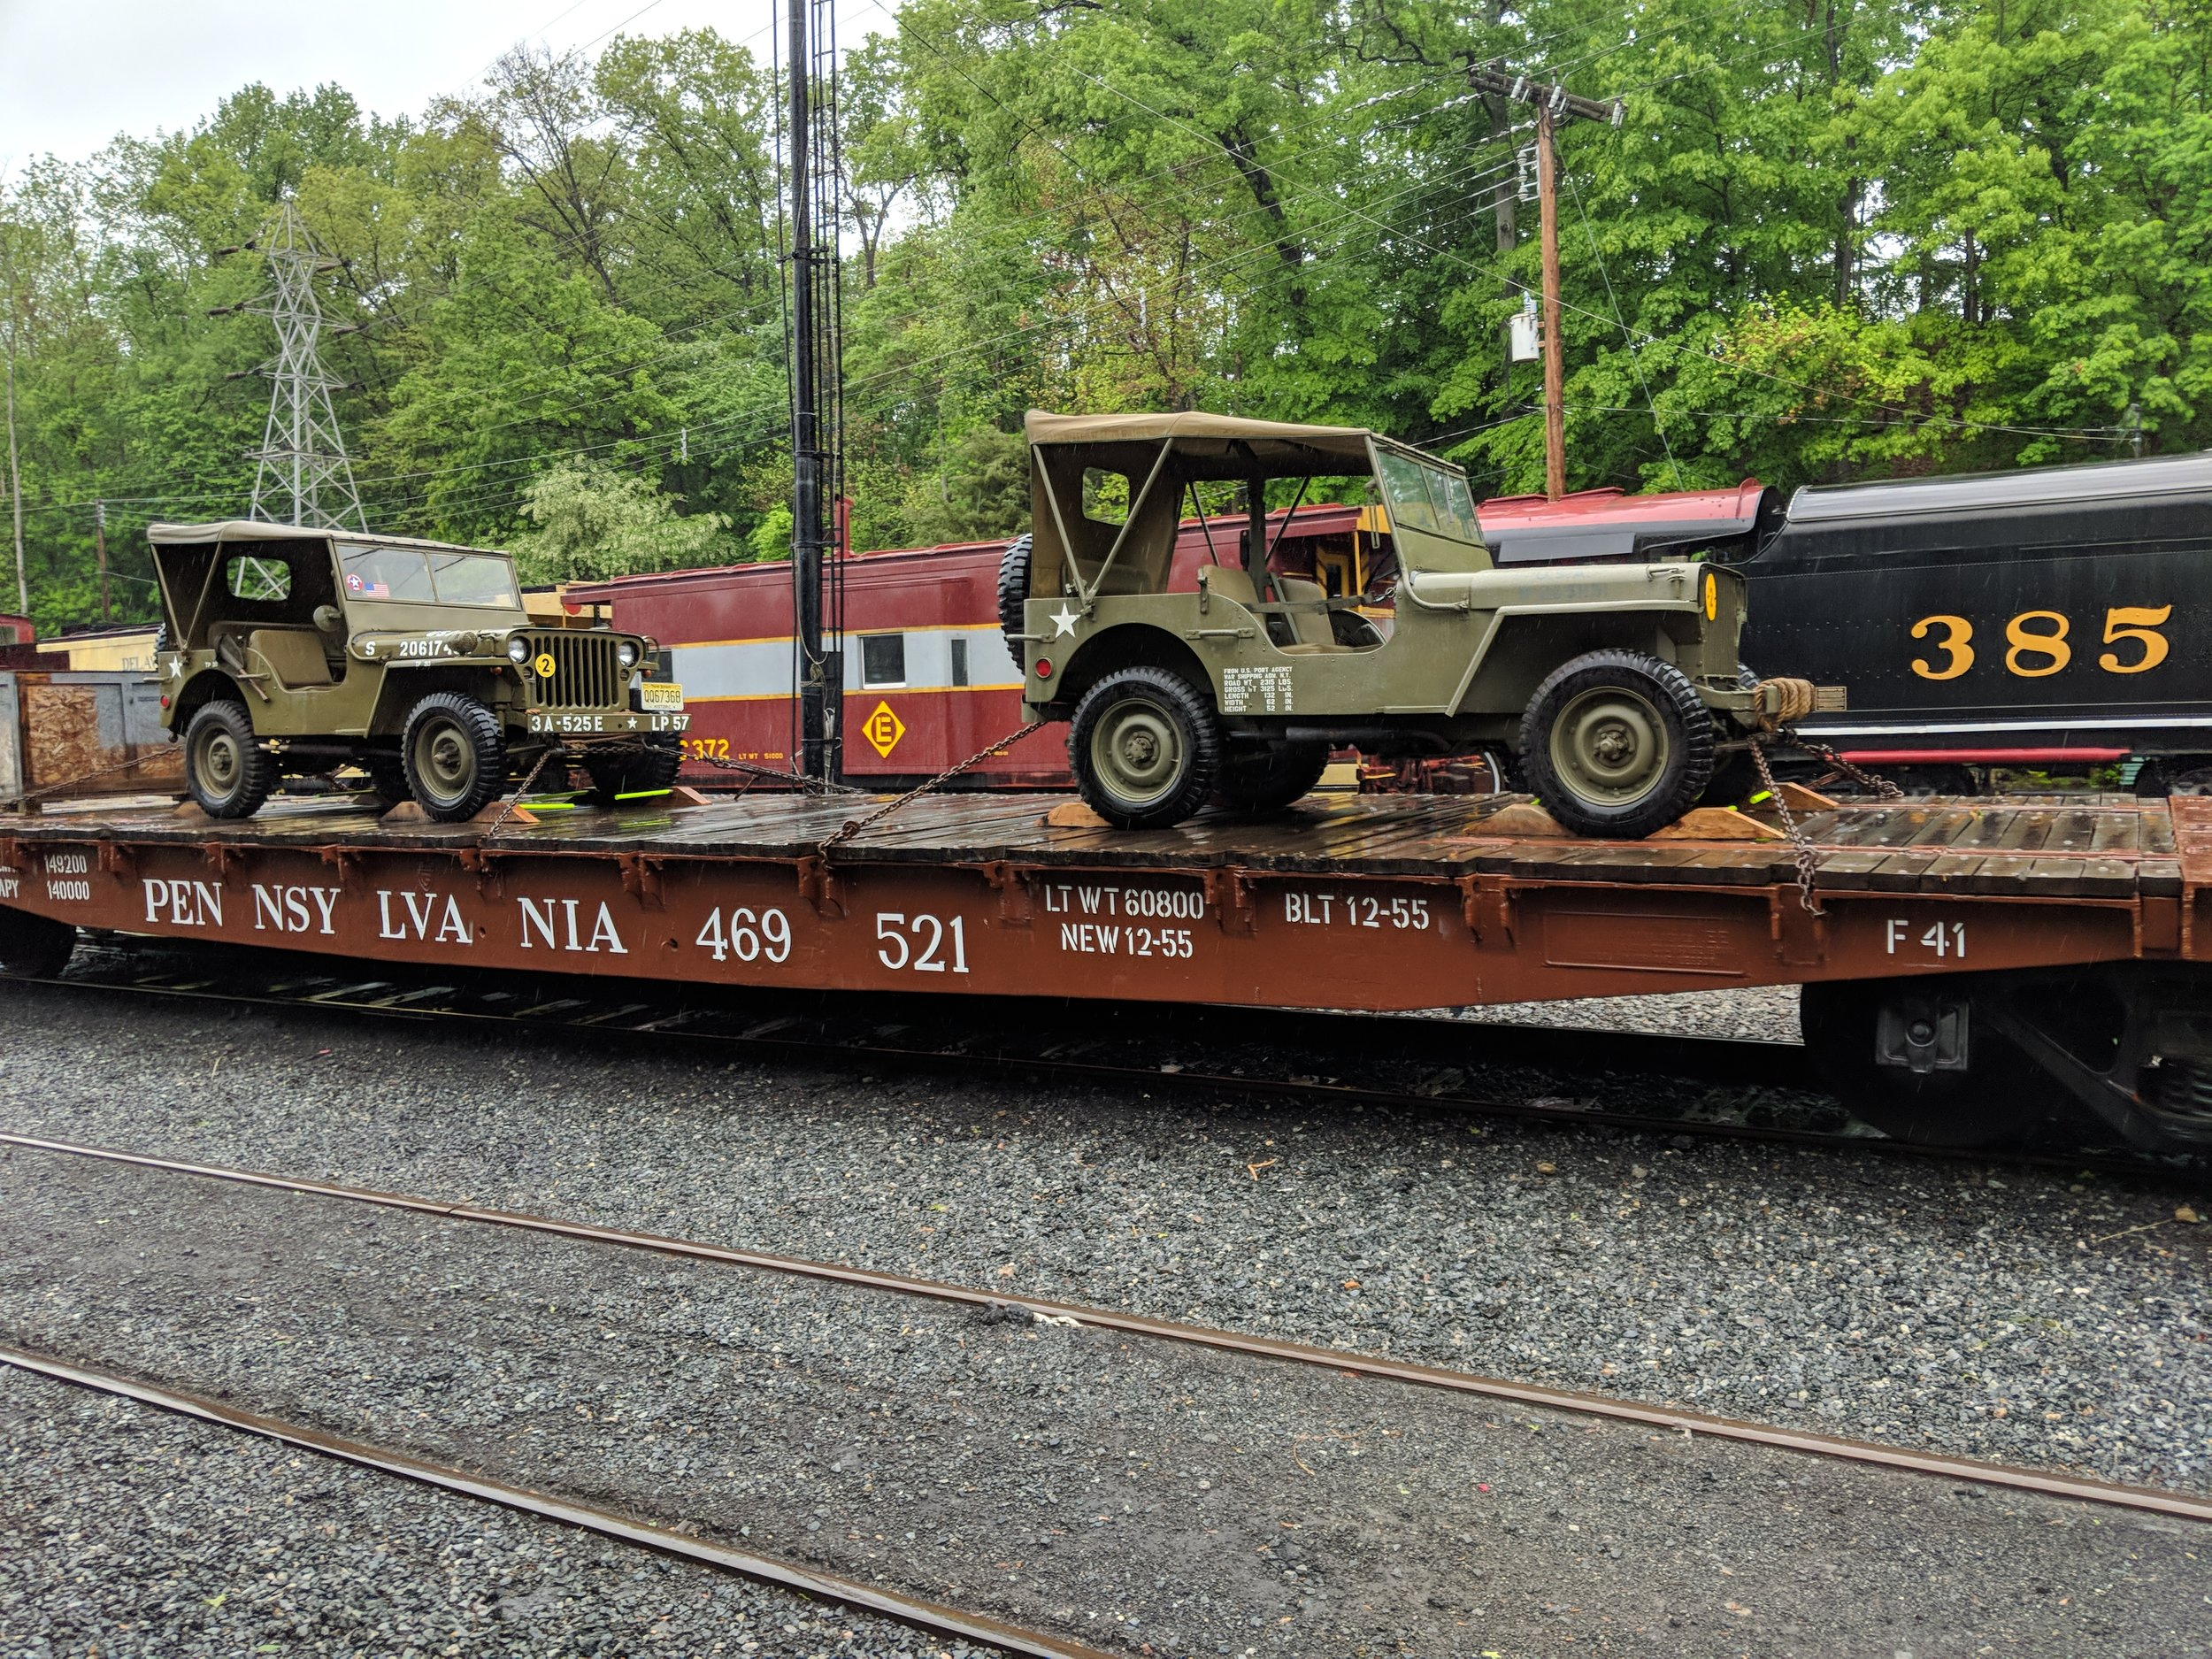 Two WWII Jeeps are tied down to the Pennsylvania Railroad flatcar.